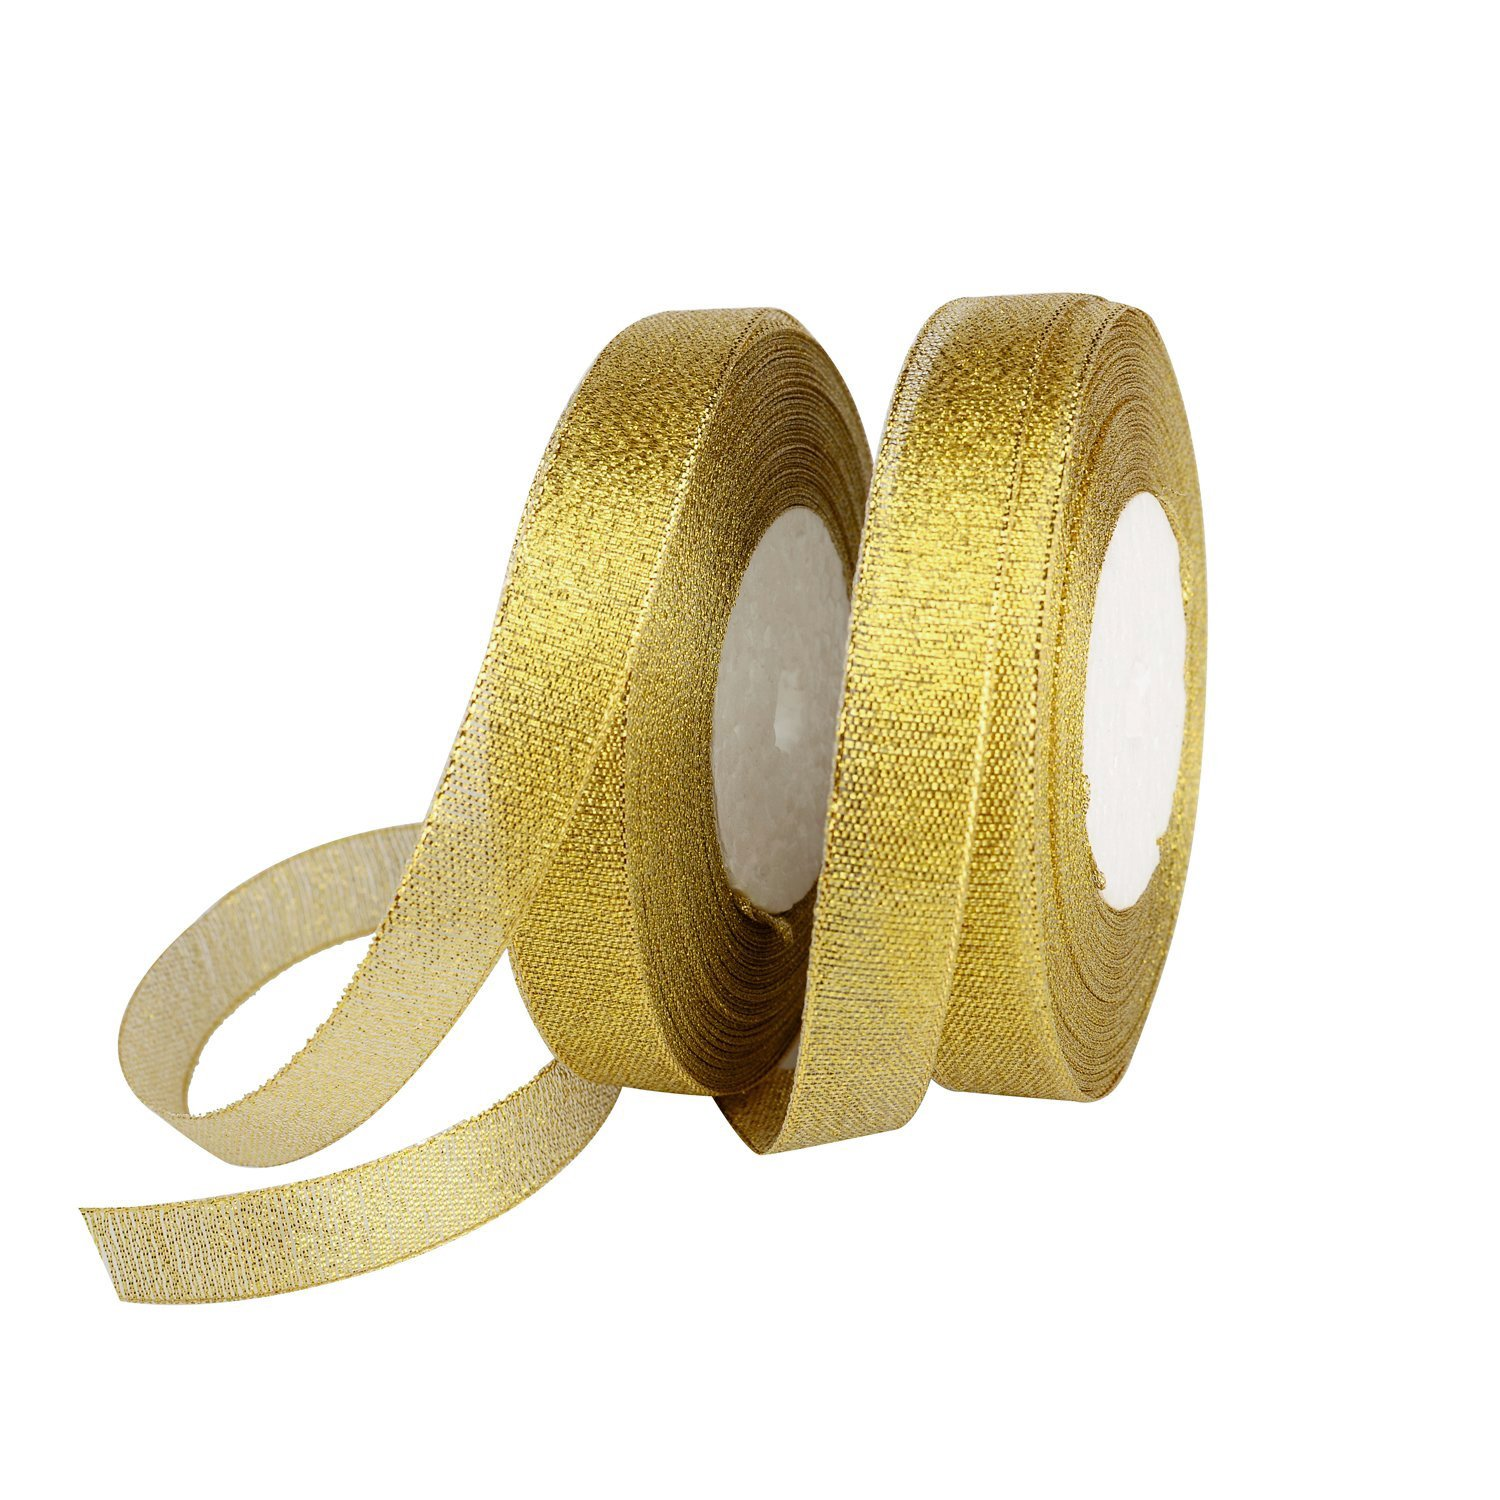 Feyarl Glitter Metallic Gold Ribbon 5/8-inch Wide Sparkly Fabric Ribbon for Gift Crafters Sewing Wedding Party Brithday Wrap Card Making Hair Bows Floral Projects (Gold) 4336858071